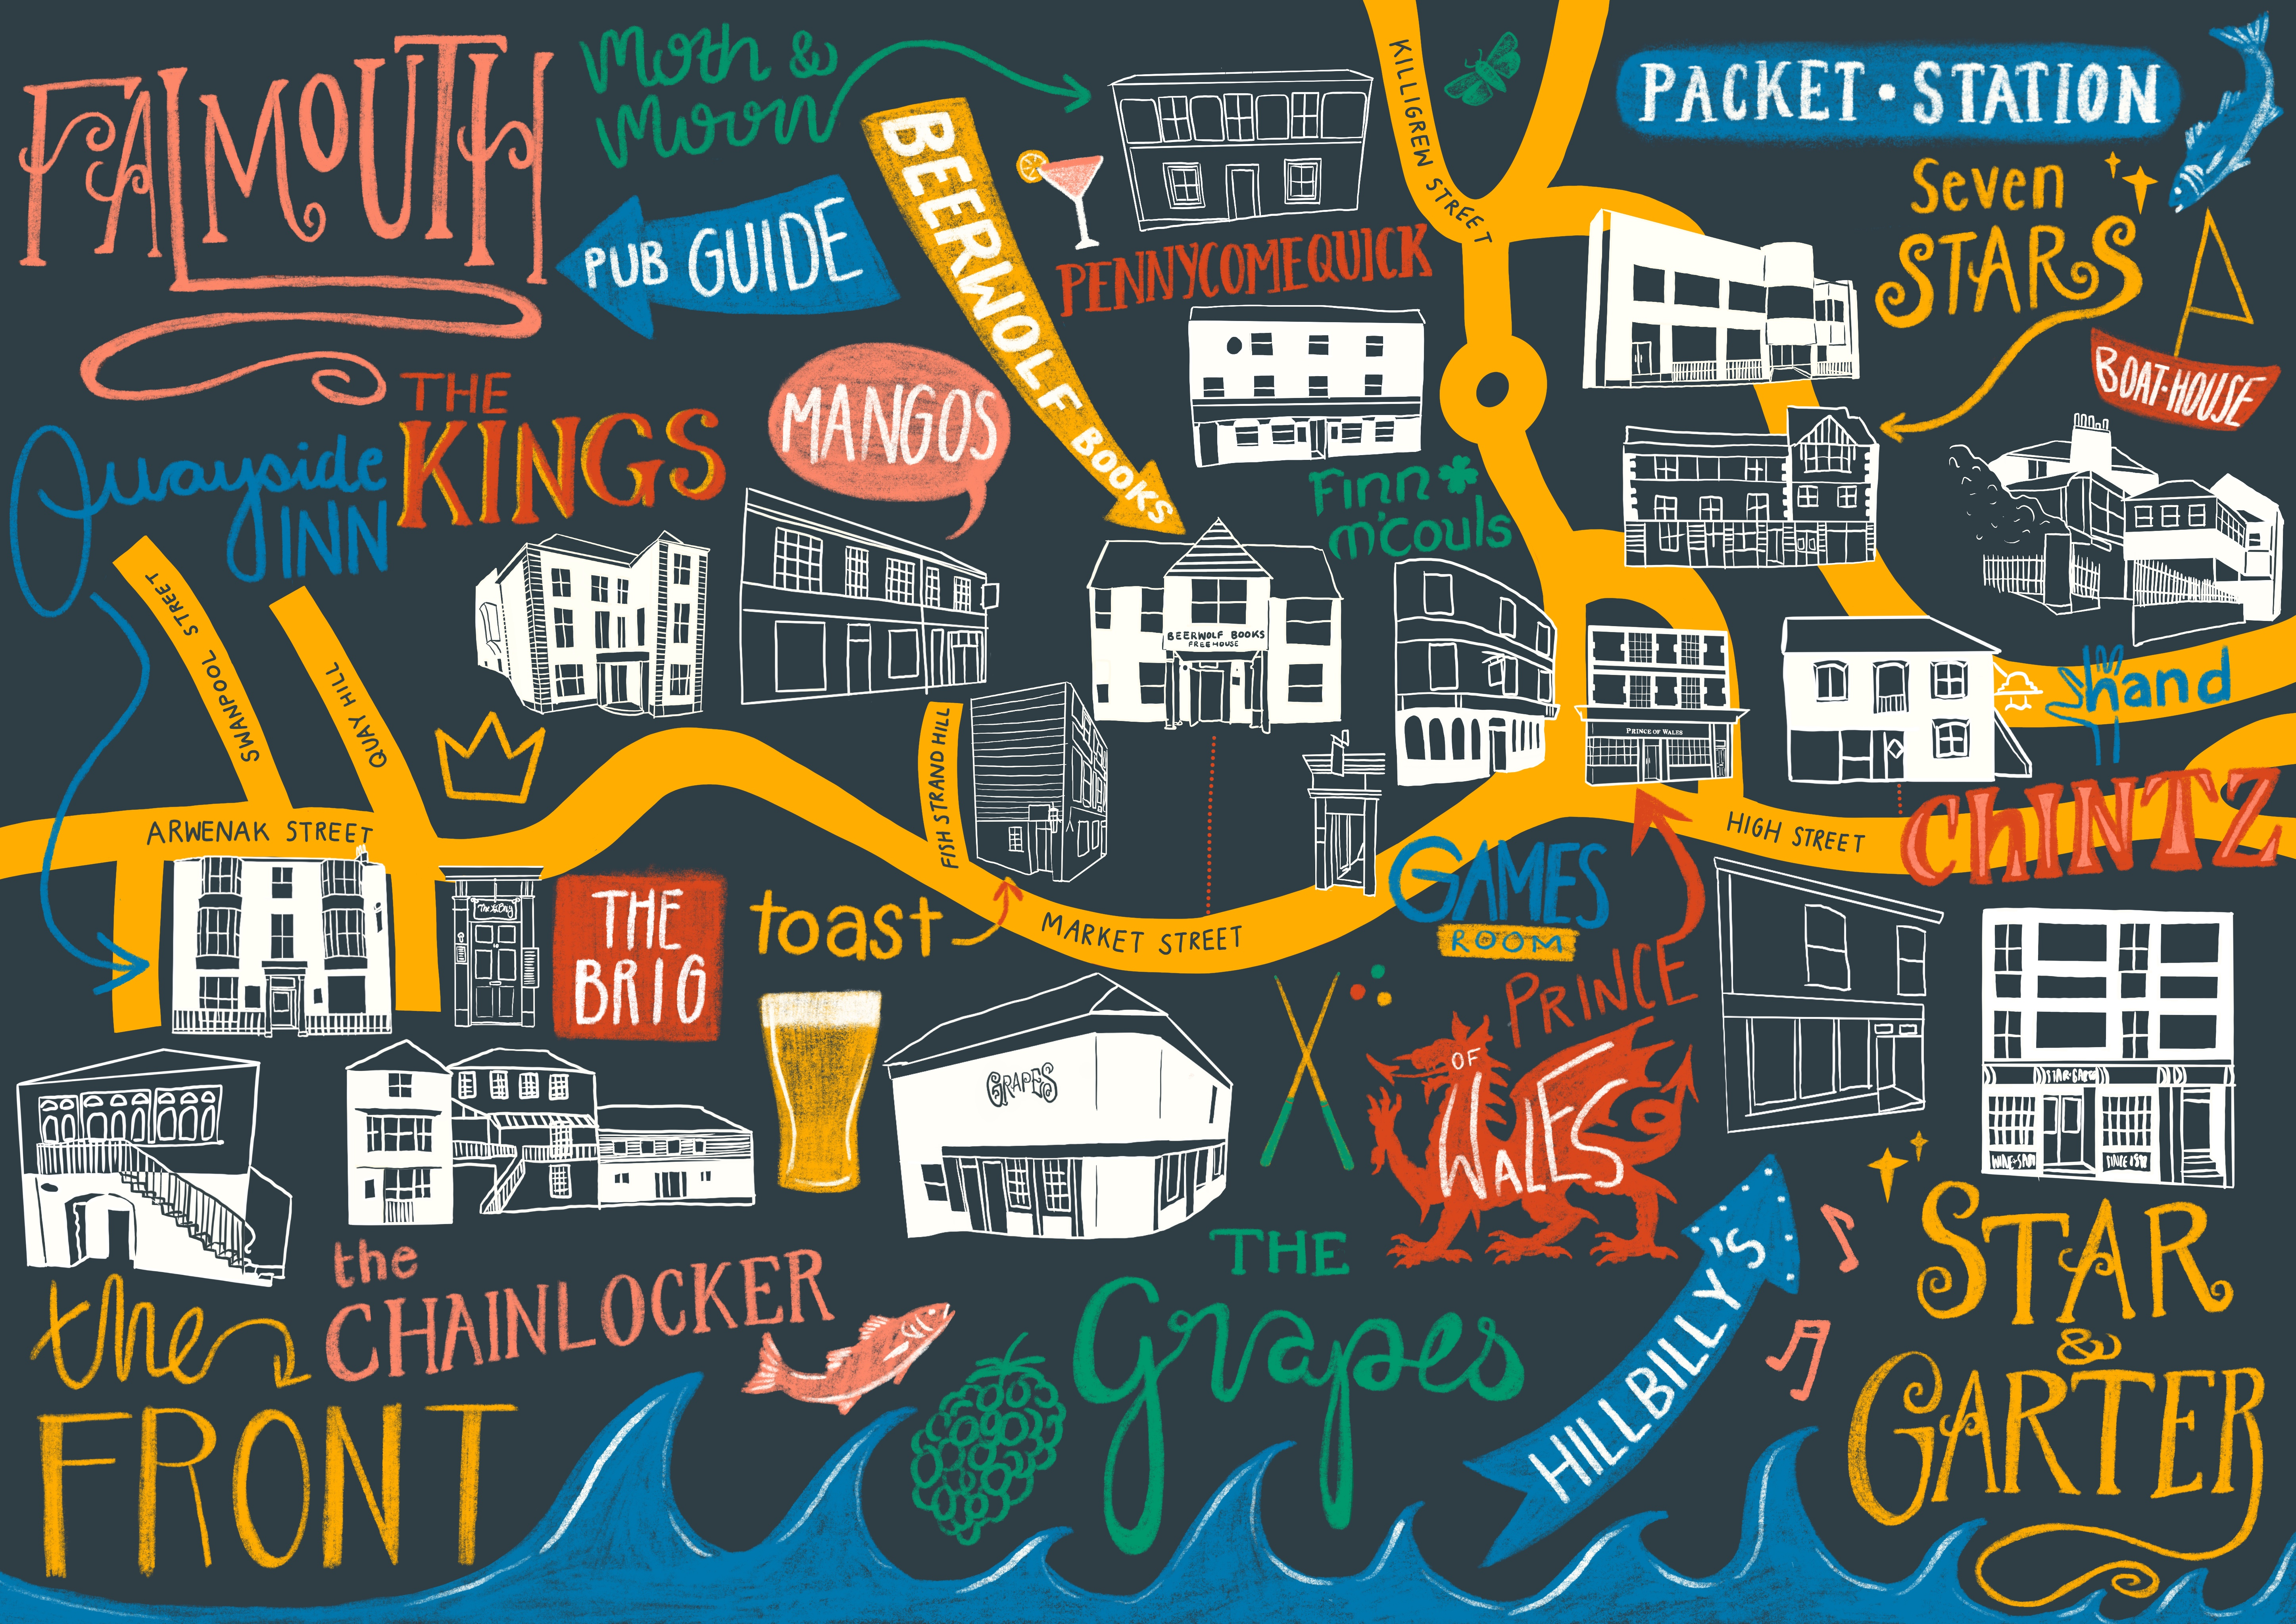 Map of the pubs in Falmouth